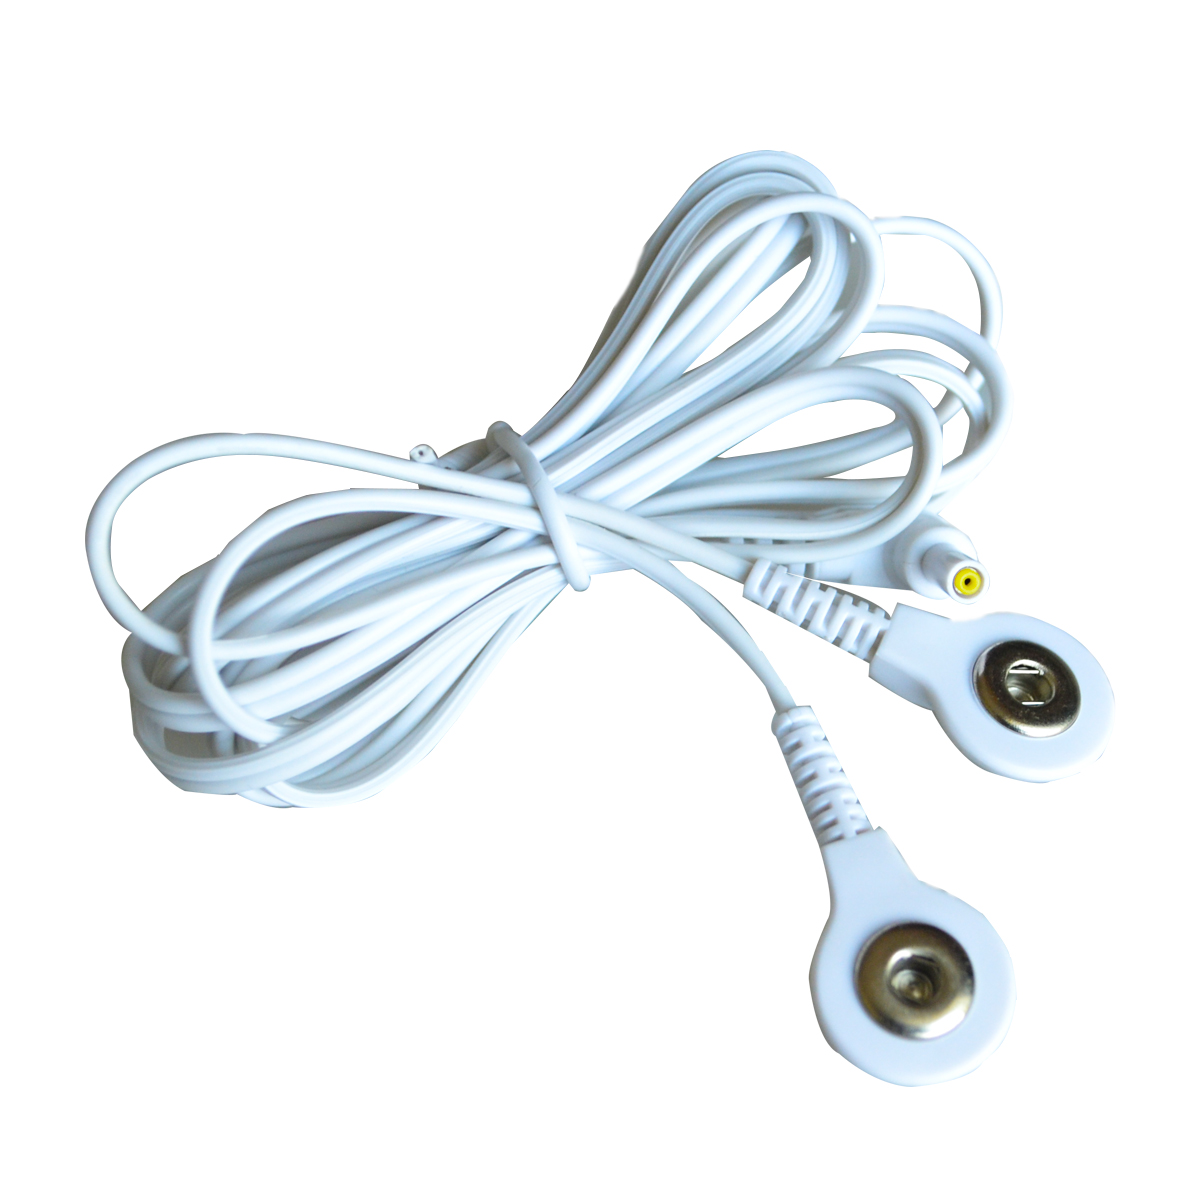 Wholesale 100Pcs/Lot Electrode Lead Wires Plug 2.35mm Connecting Cables with 2 Buttons For TENS 7000 Electronic Therapy Machines 5pcs lot replacement electrode tens lead wires connect cables pin 2 35mm for tens 7000 with 2 buttons